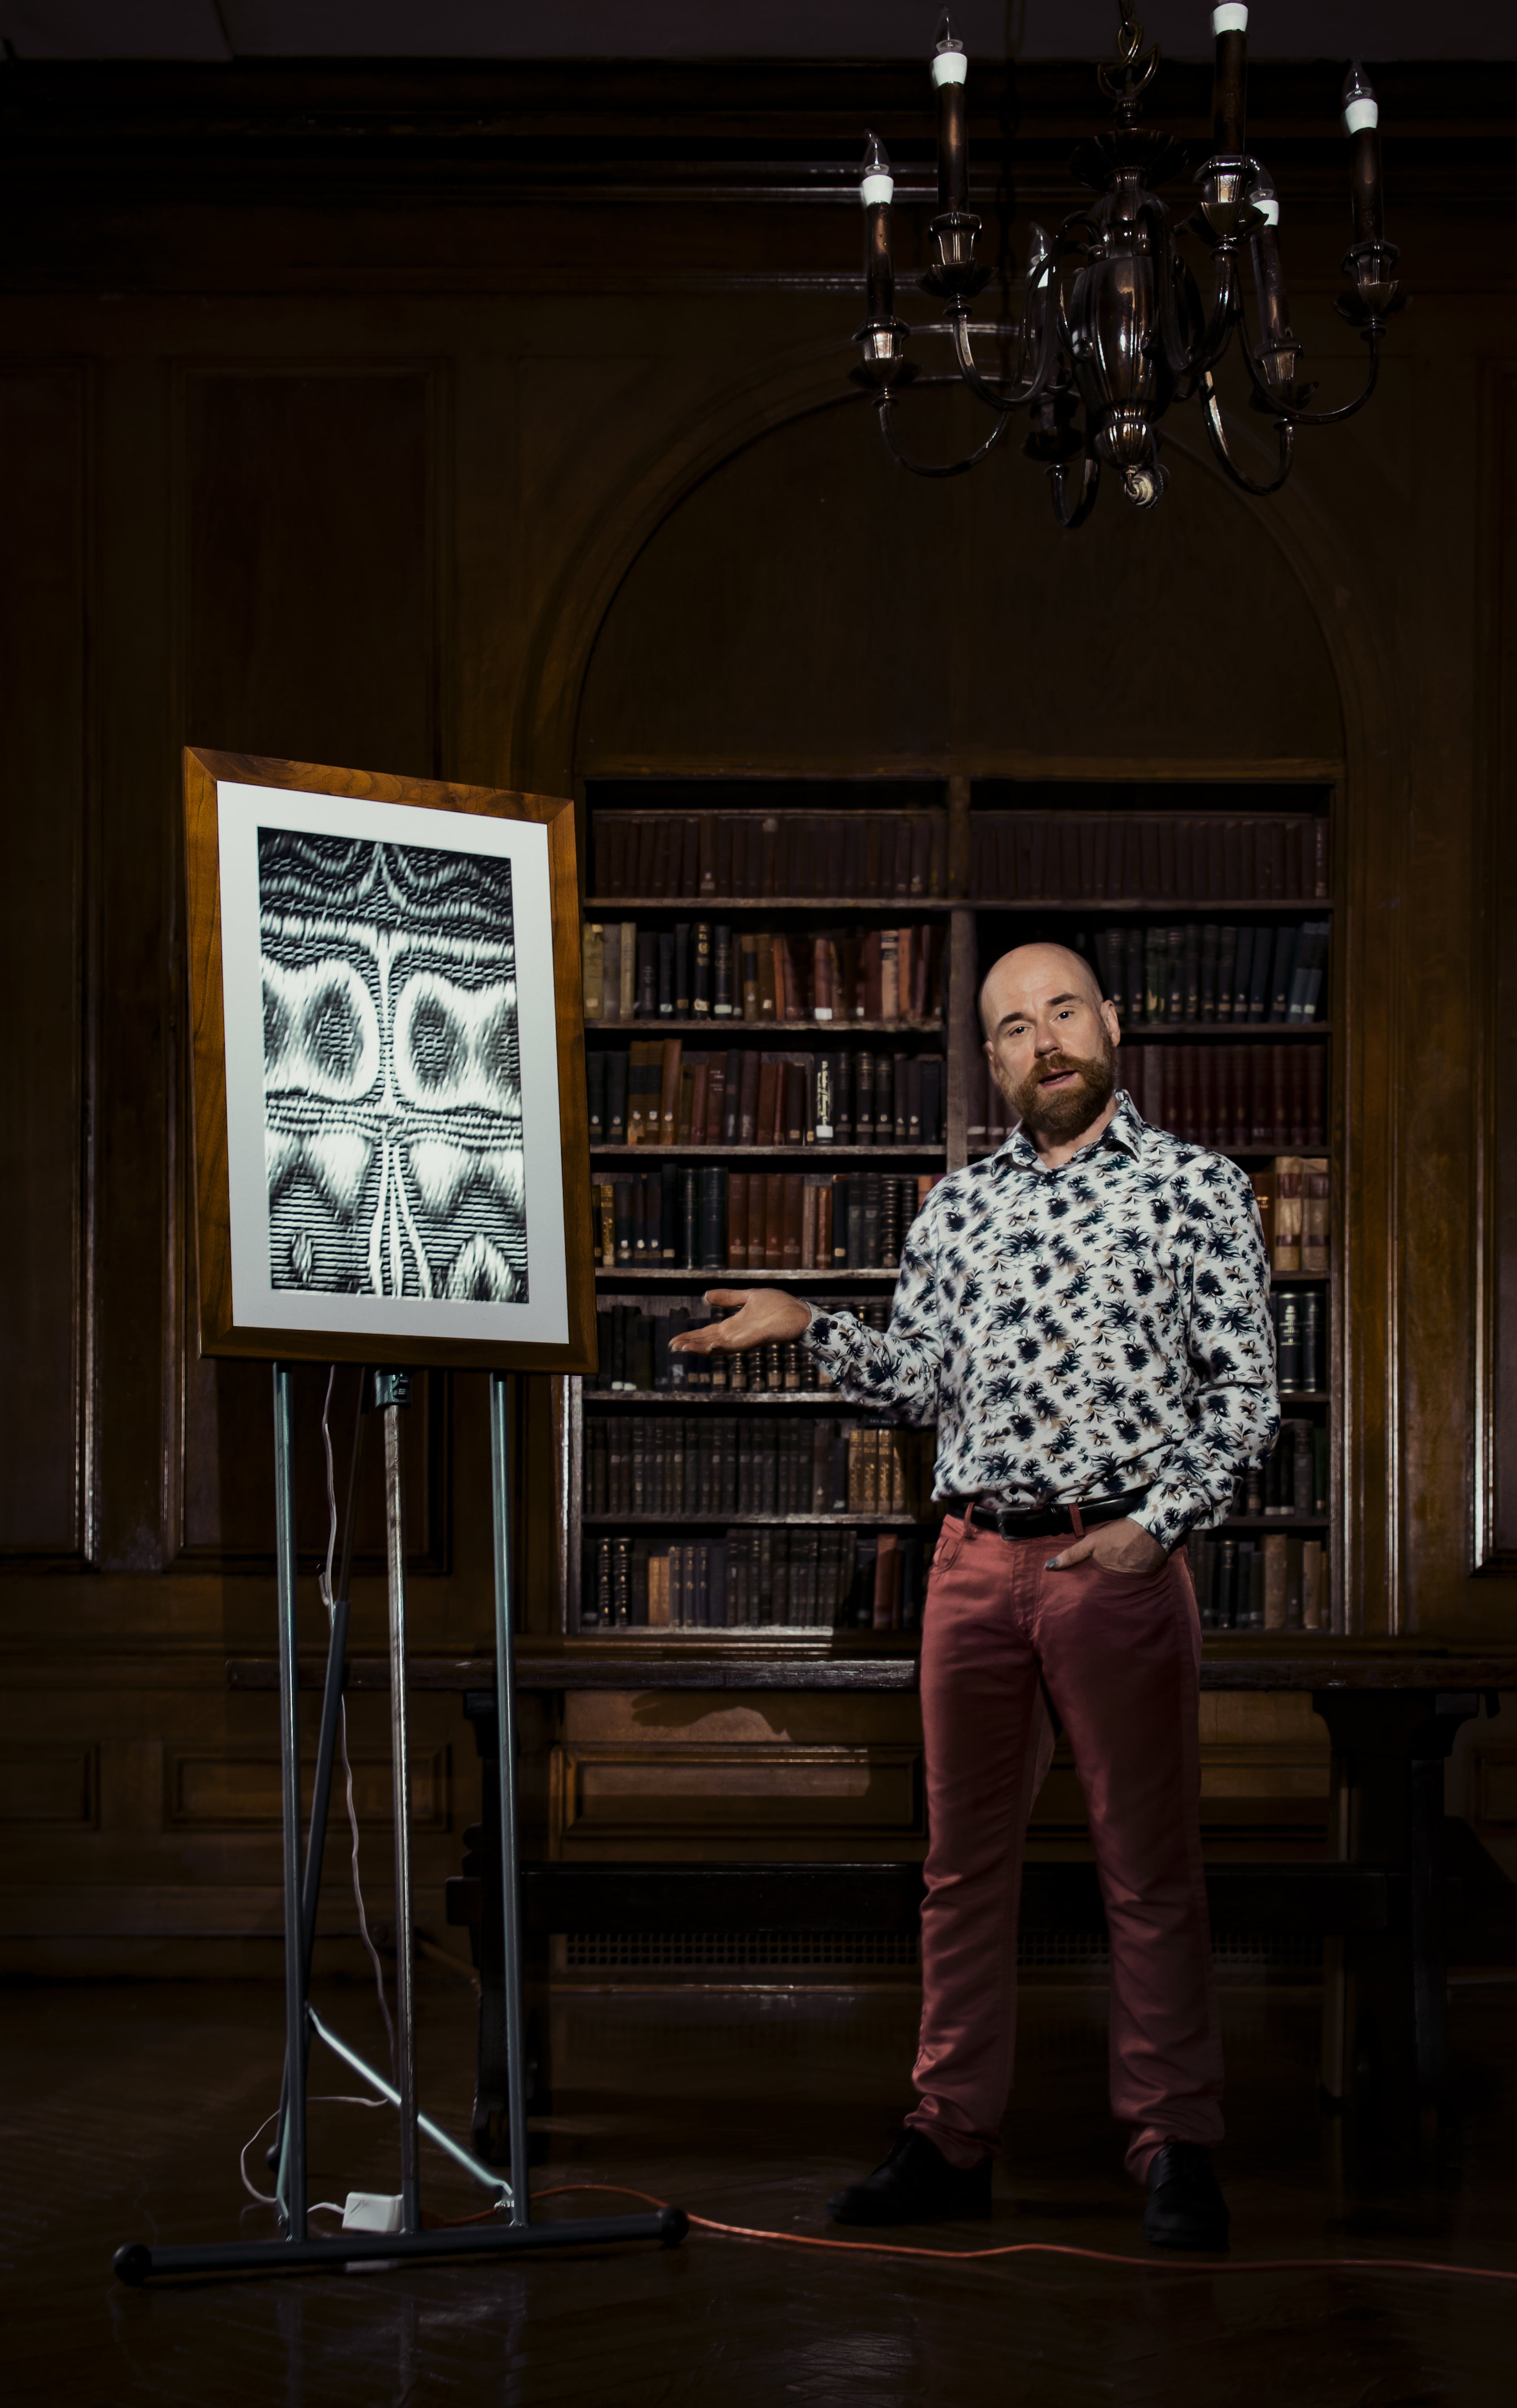 Media Artist Benton C Bainbridge stands in a wood-paneled library next to an easel which holds a framed screen displaying his abstract artwork.